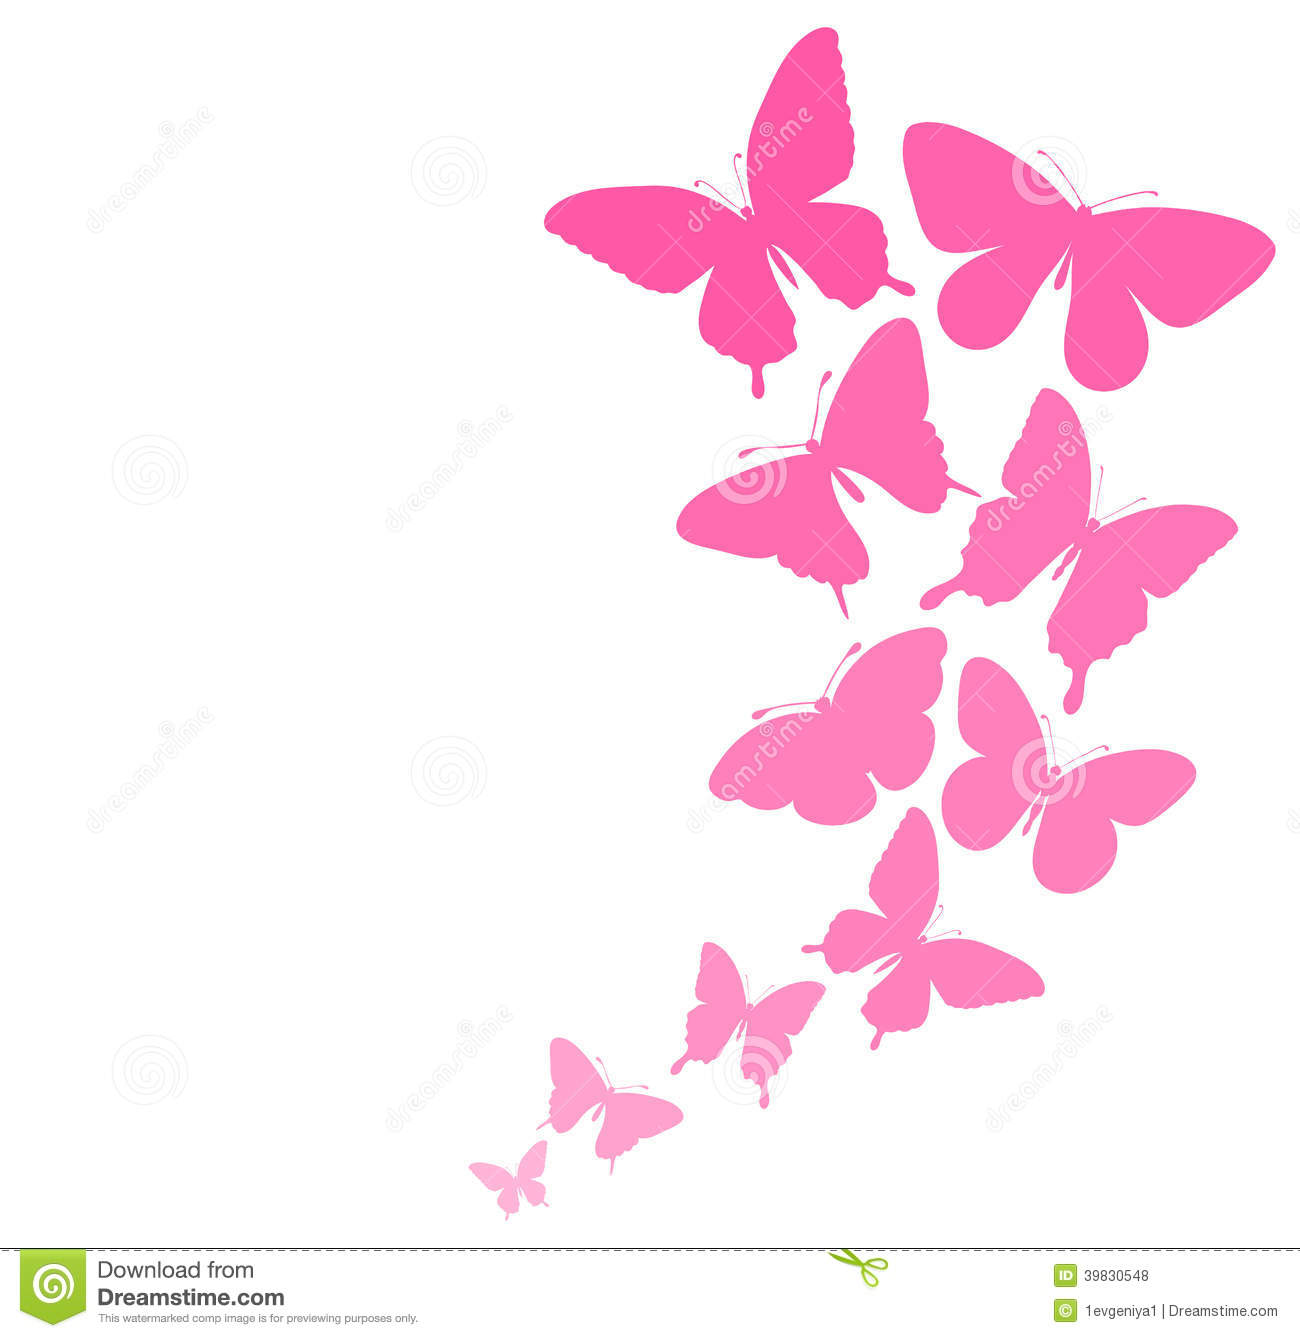 Background With A Border Of Butterflies Flying. Stock Illustration - Image: 39830548